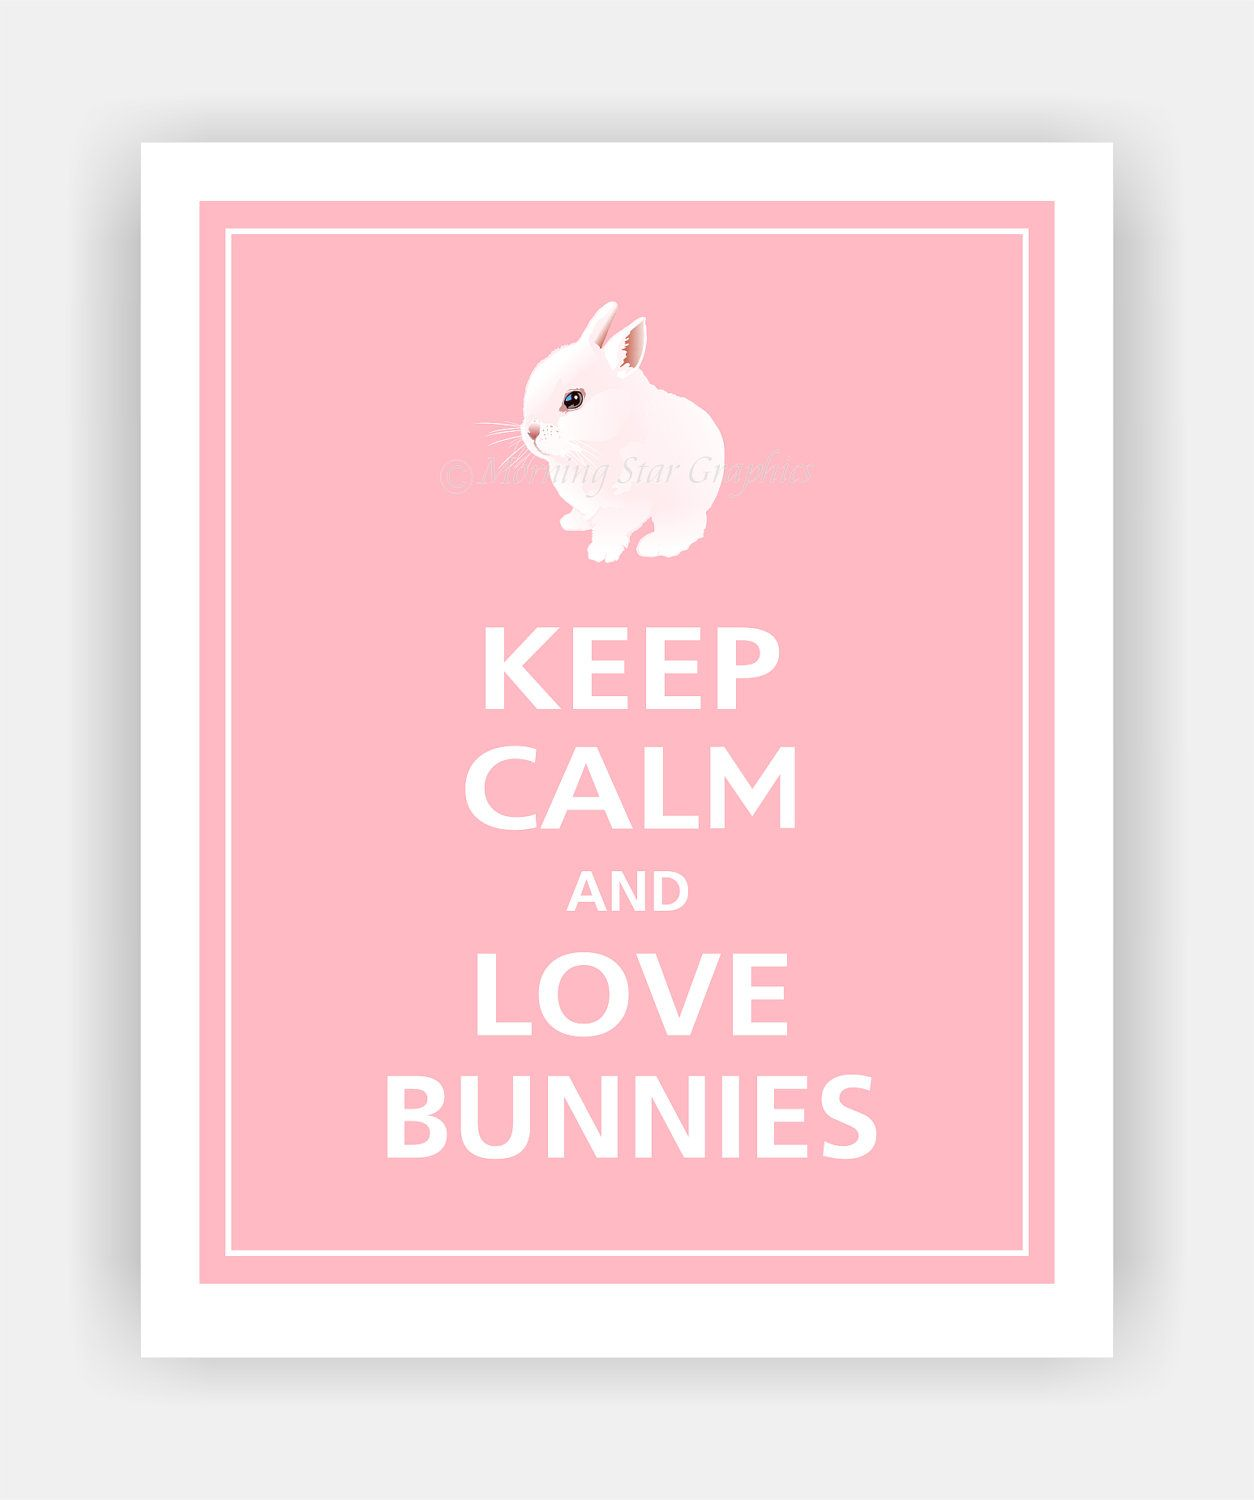 keep calm and love bunnies cute baby bunny print 8x10 by posterpop